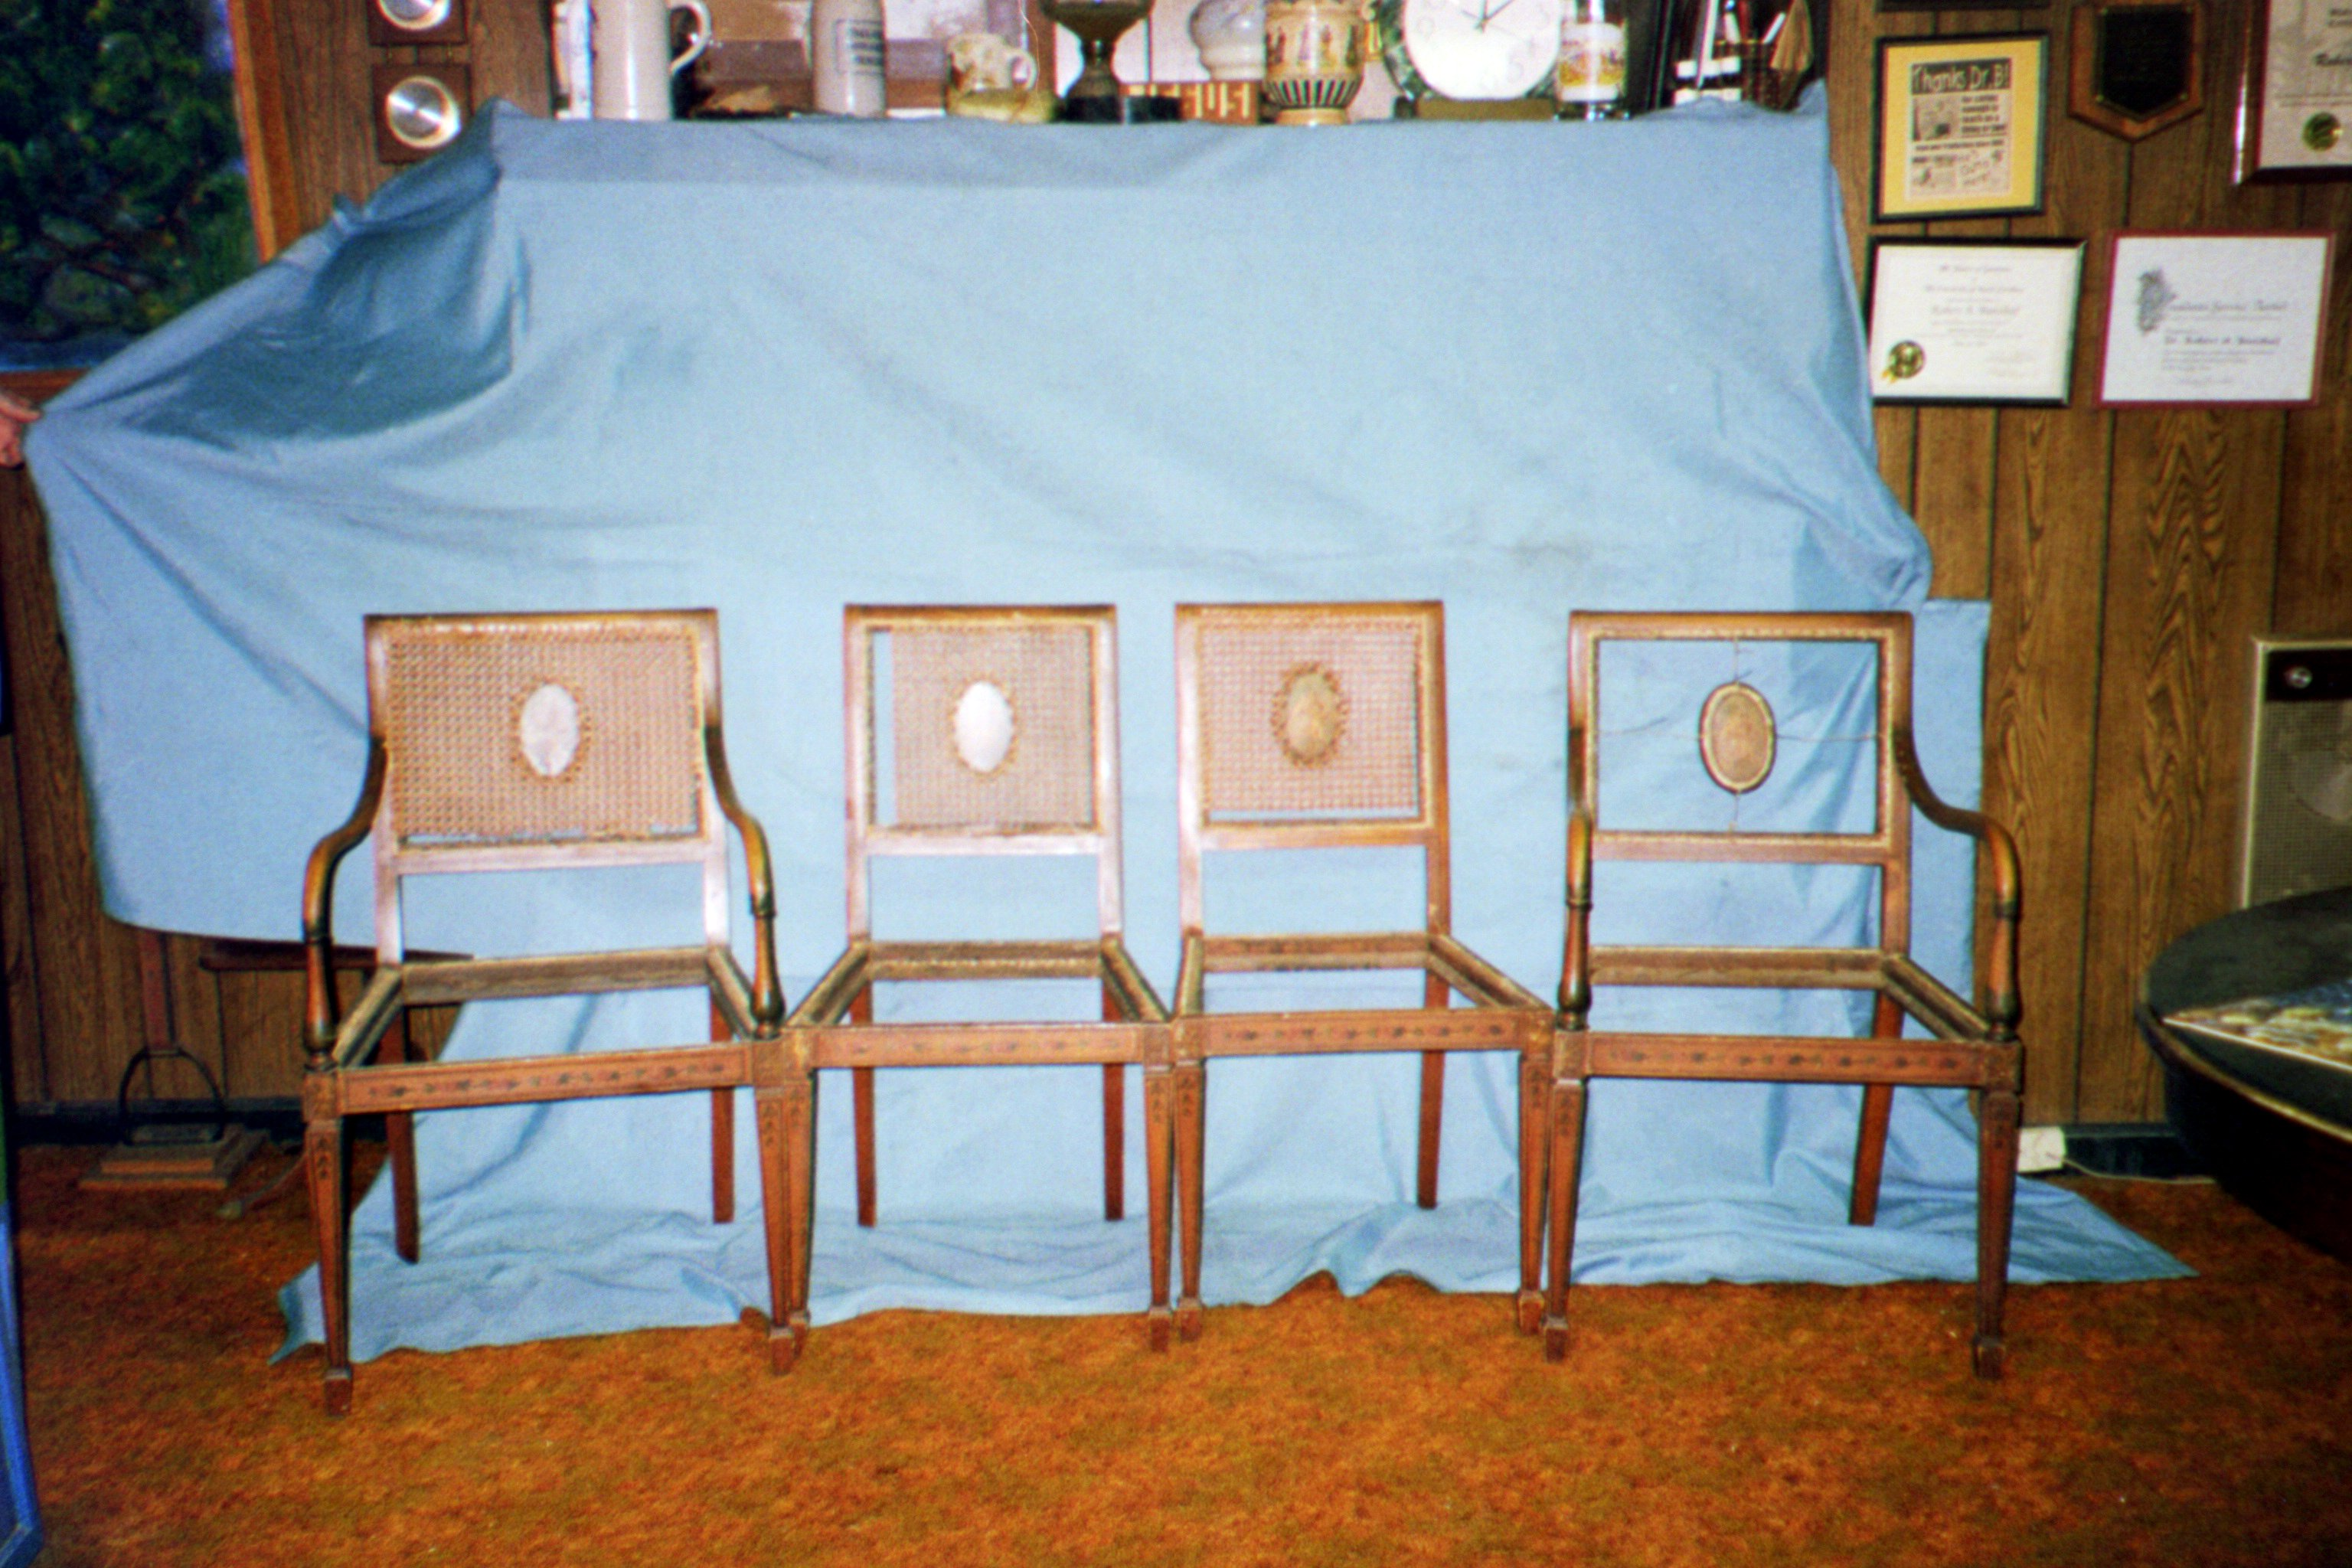 6 chairs longing to be